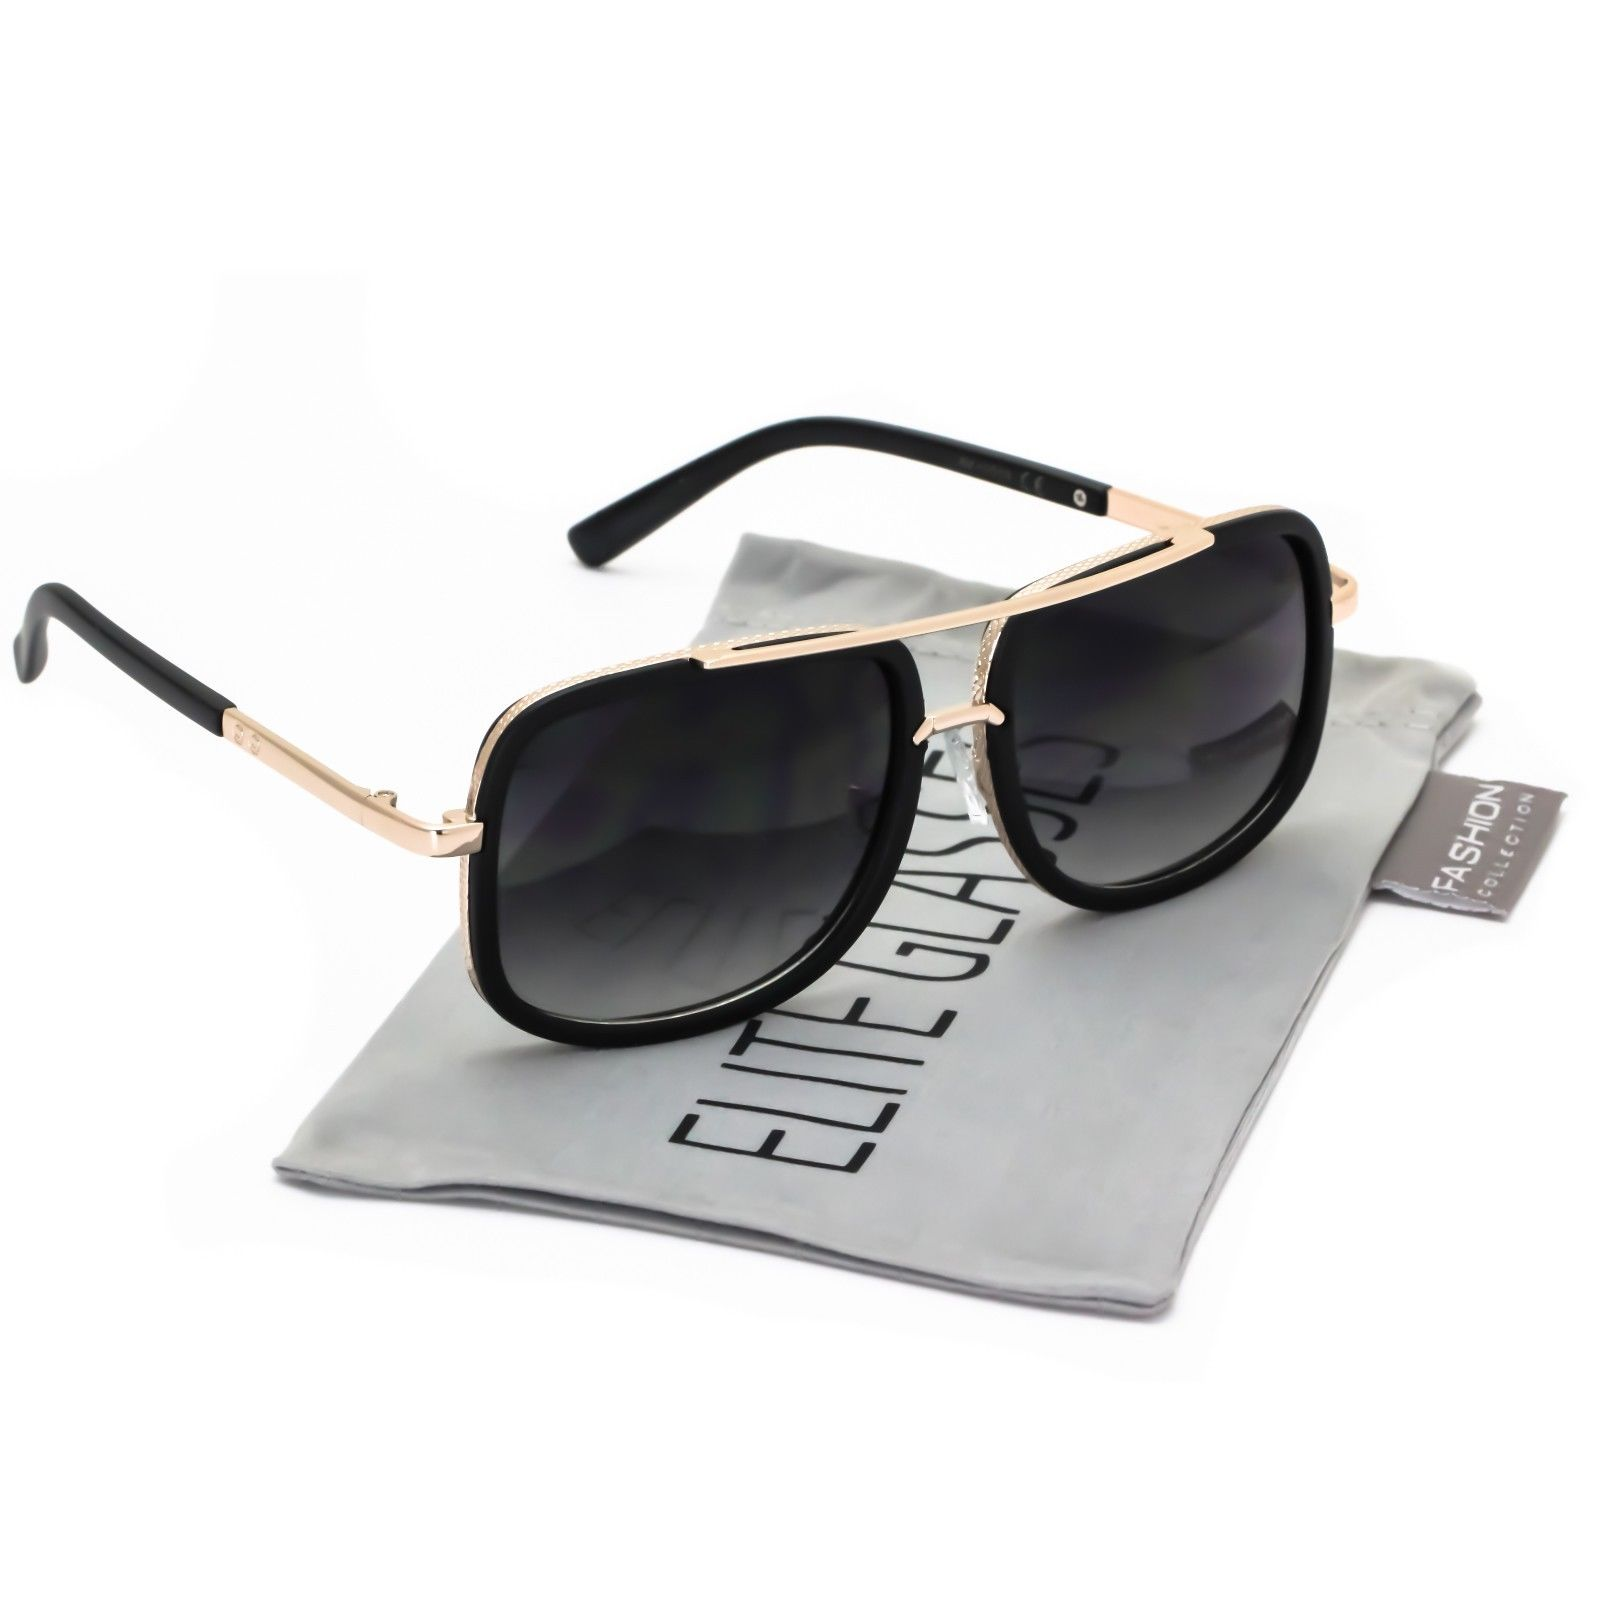 3414d8b20ea1 Mach Oversized Square Aviator Gold Metal Bar Men Designer Fashion Sunglasses  - Walmart.com